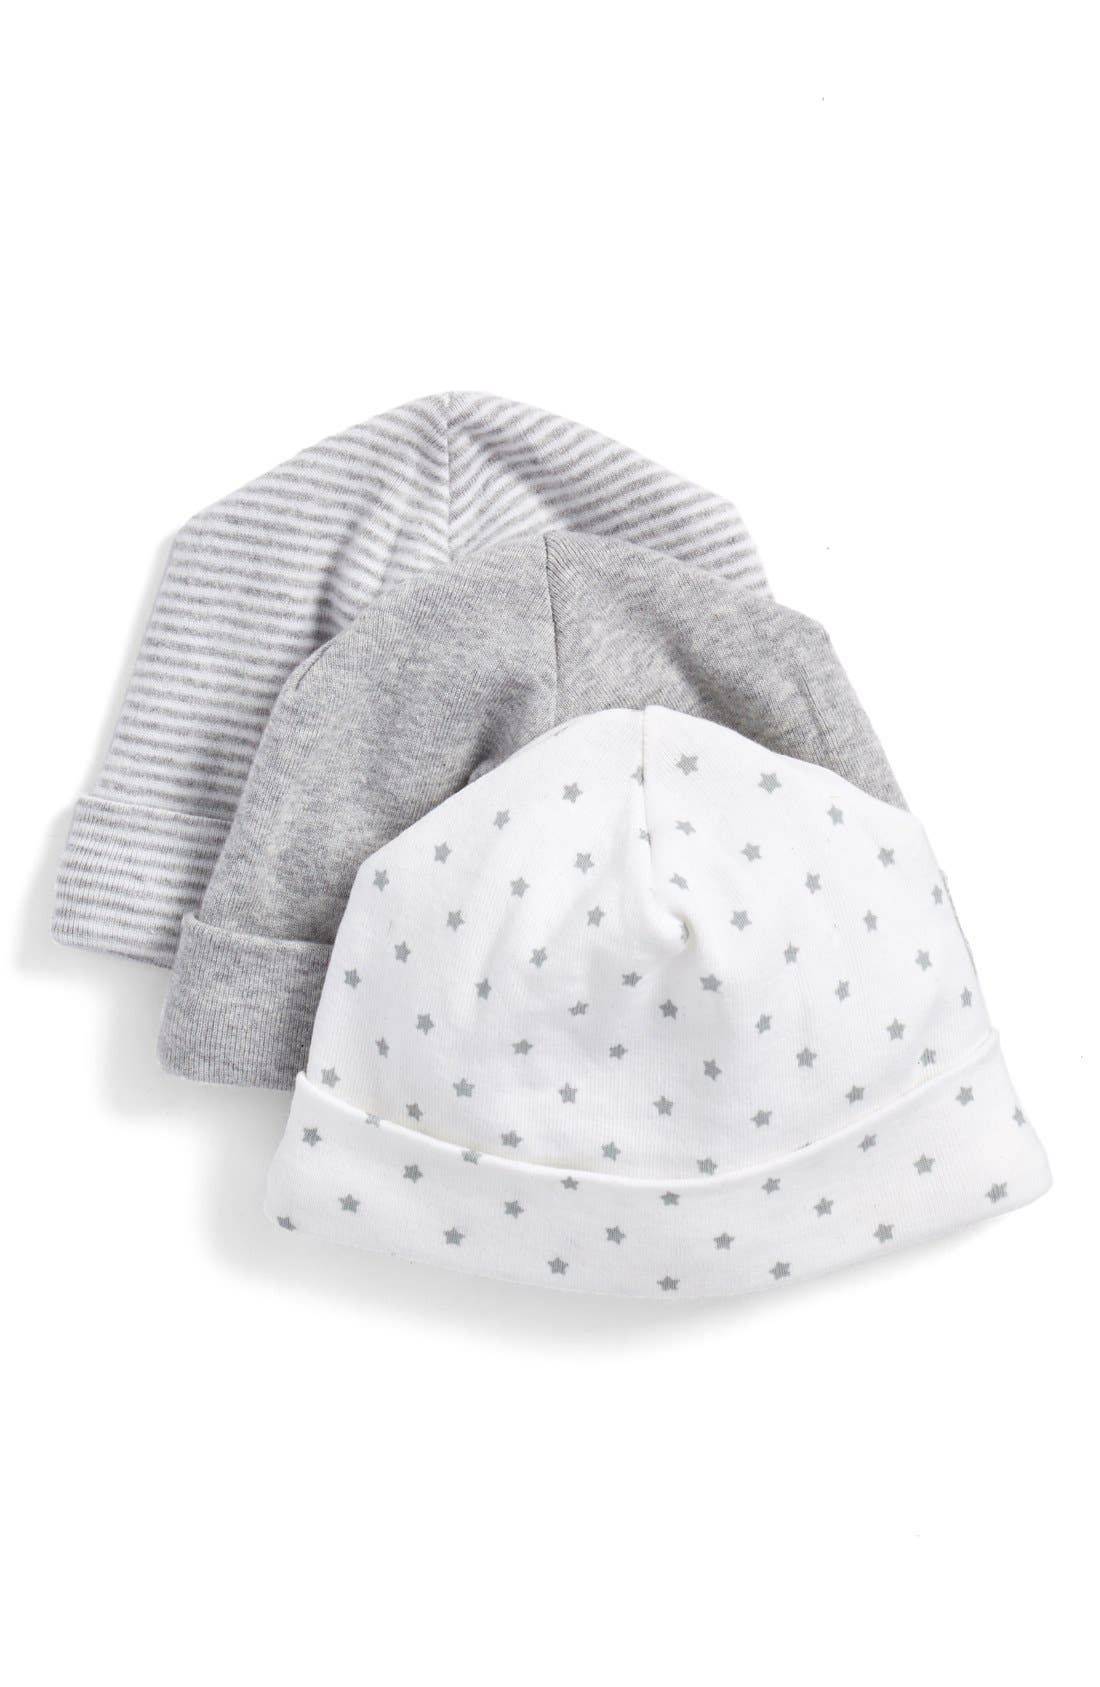 Alternate Image 1 Selected - Nordstrom Baby Cotton Hats (3-Pack) (Baby)